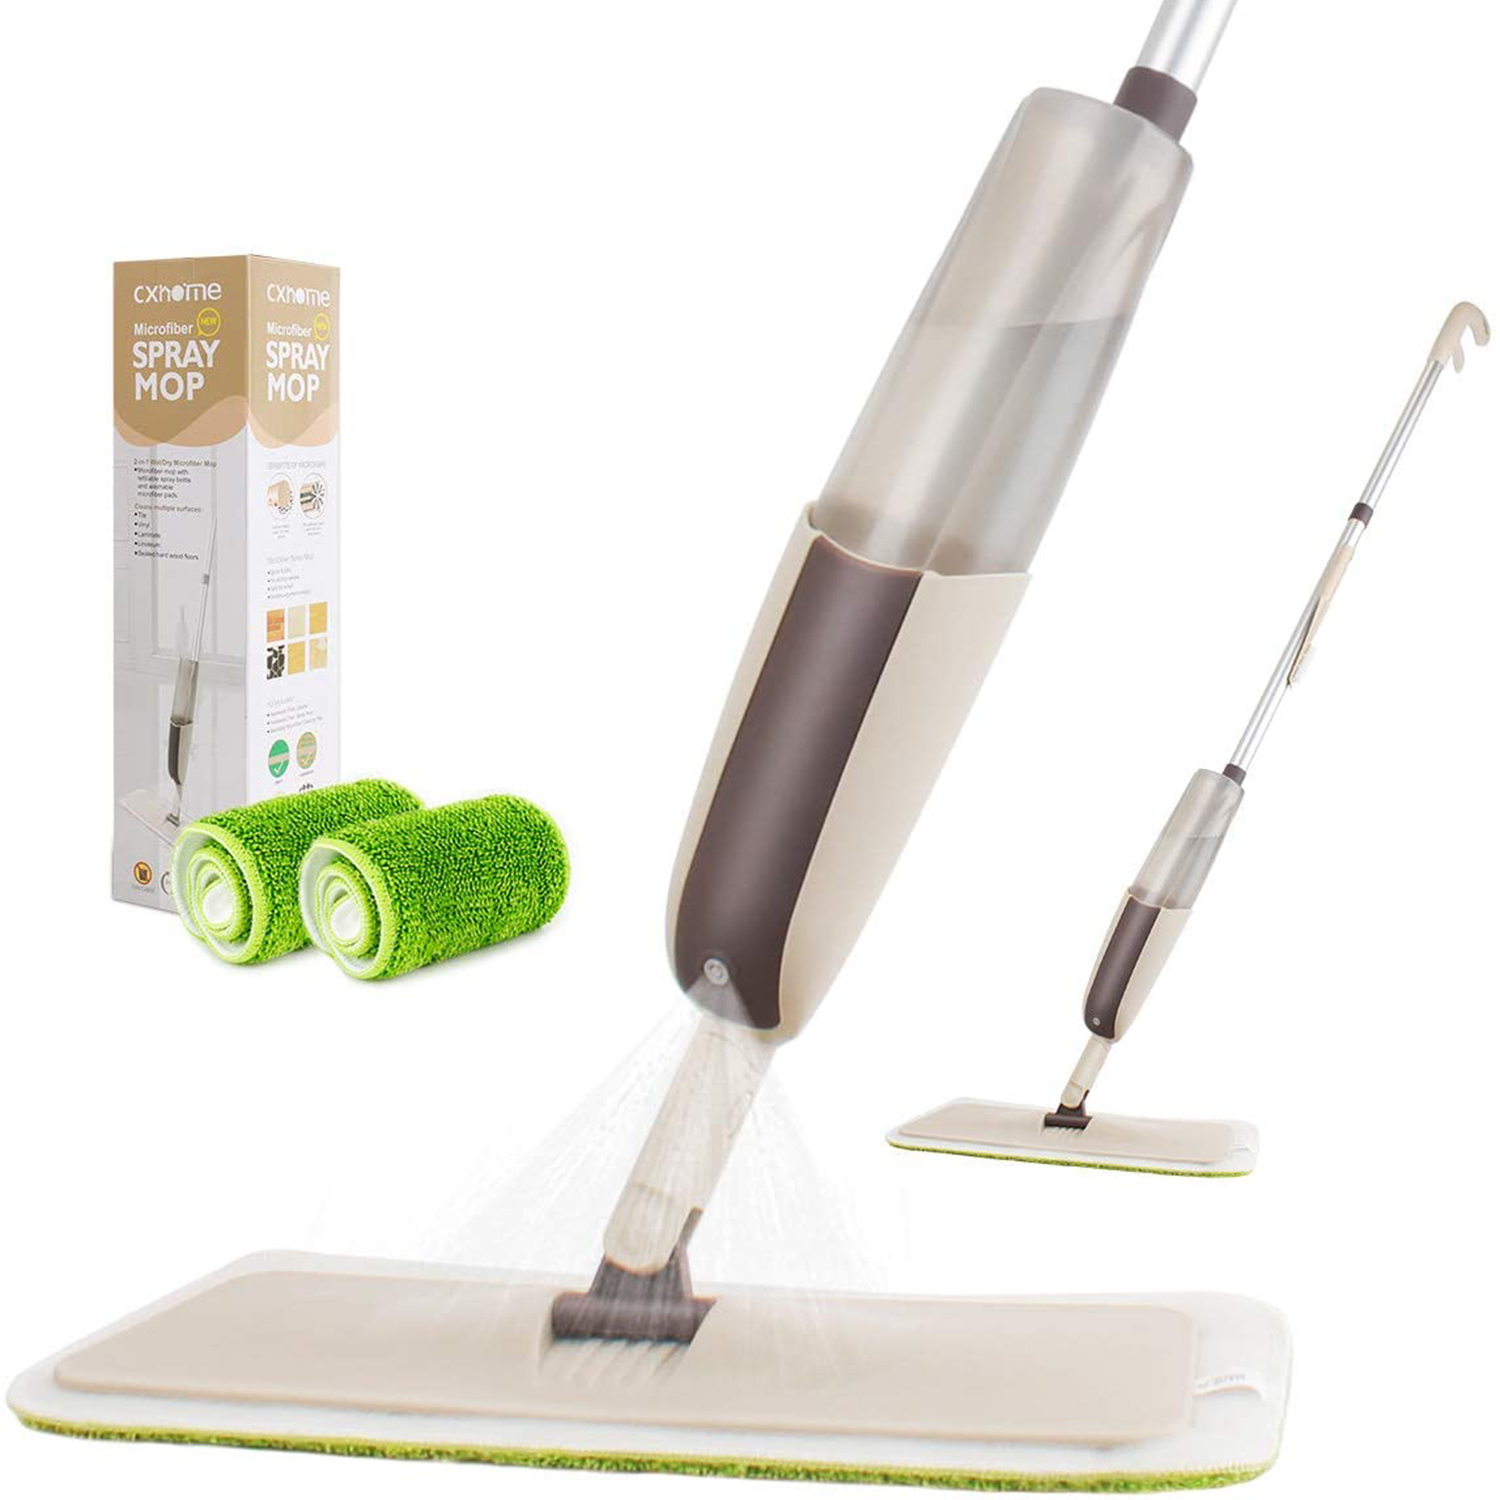 Spray Mop for Floor Cleaning, CXhome Hardwood Floor Mop